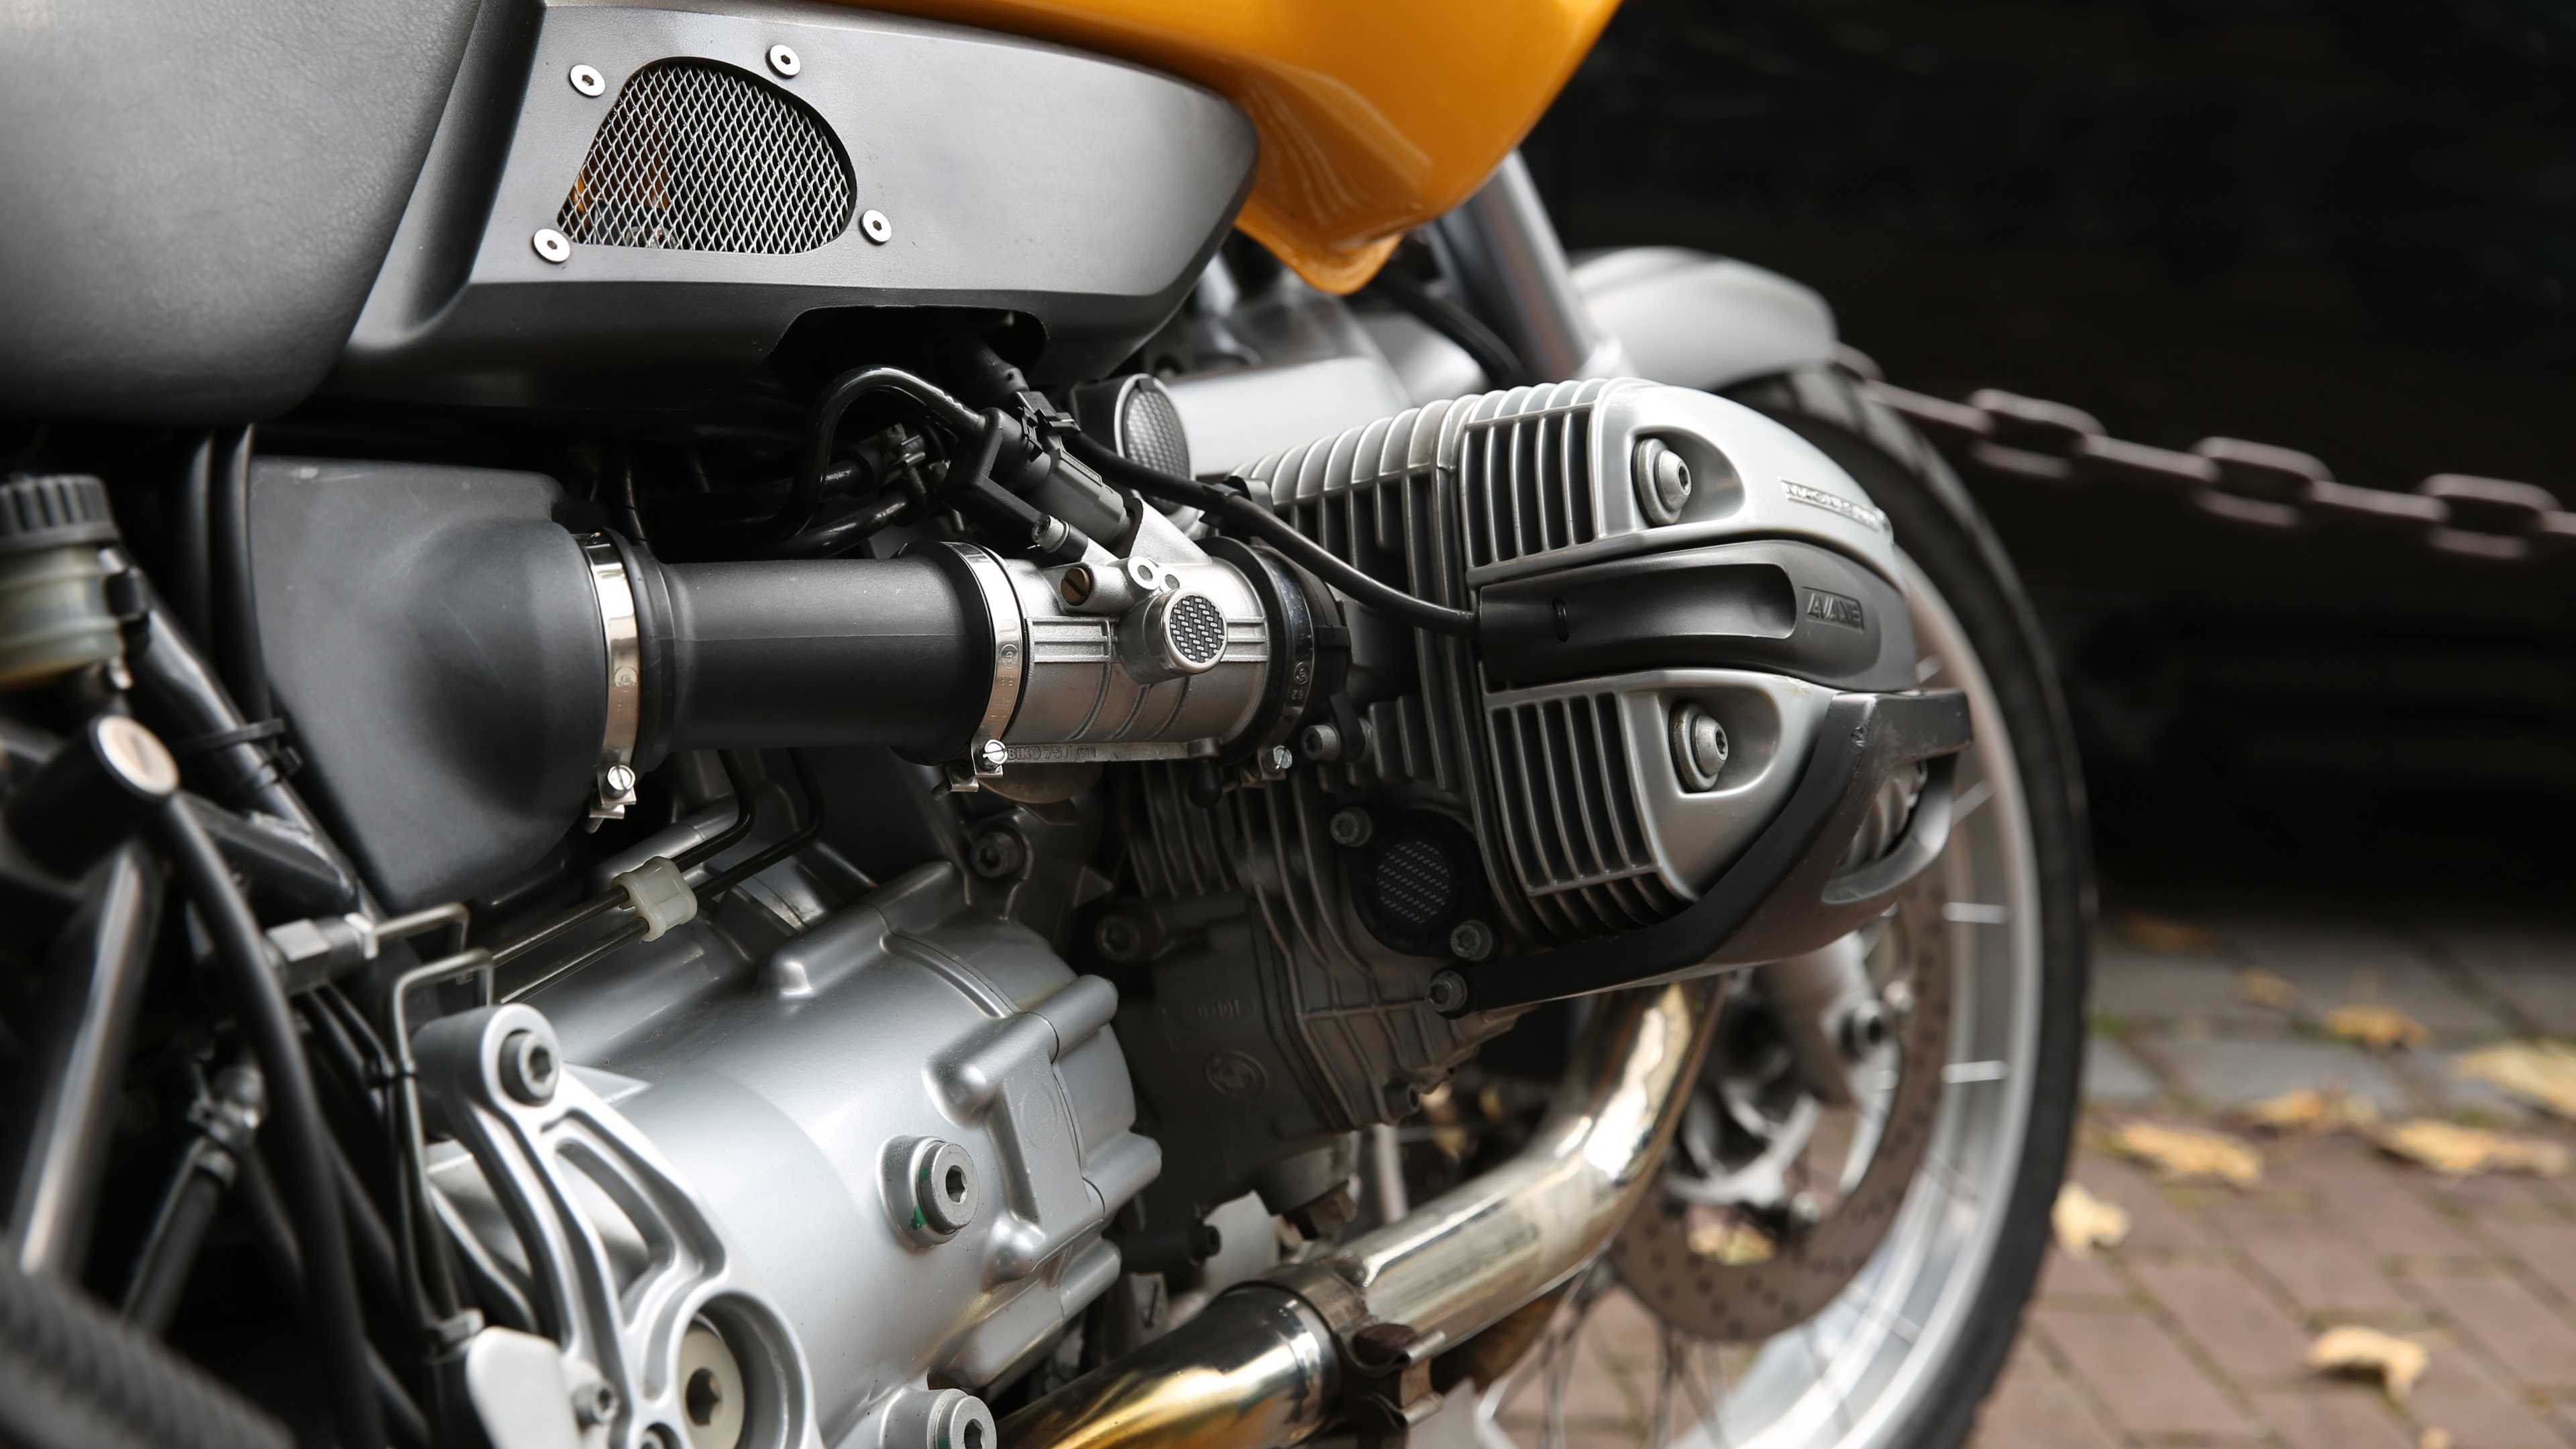 Motorcycle Engine 4k Ultra Hd Engine 1692480 Hd Wallpaper Backgrounds Download